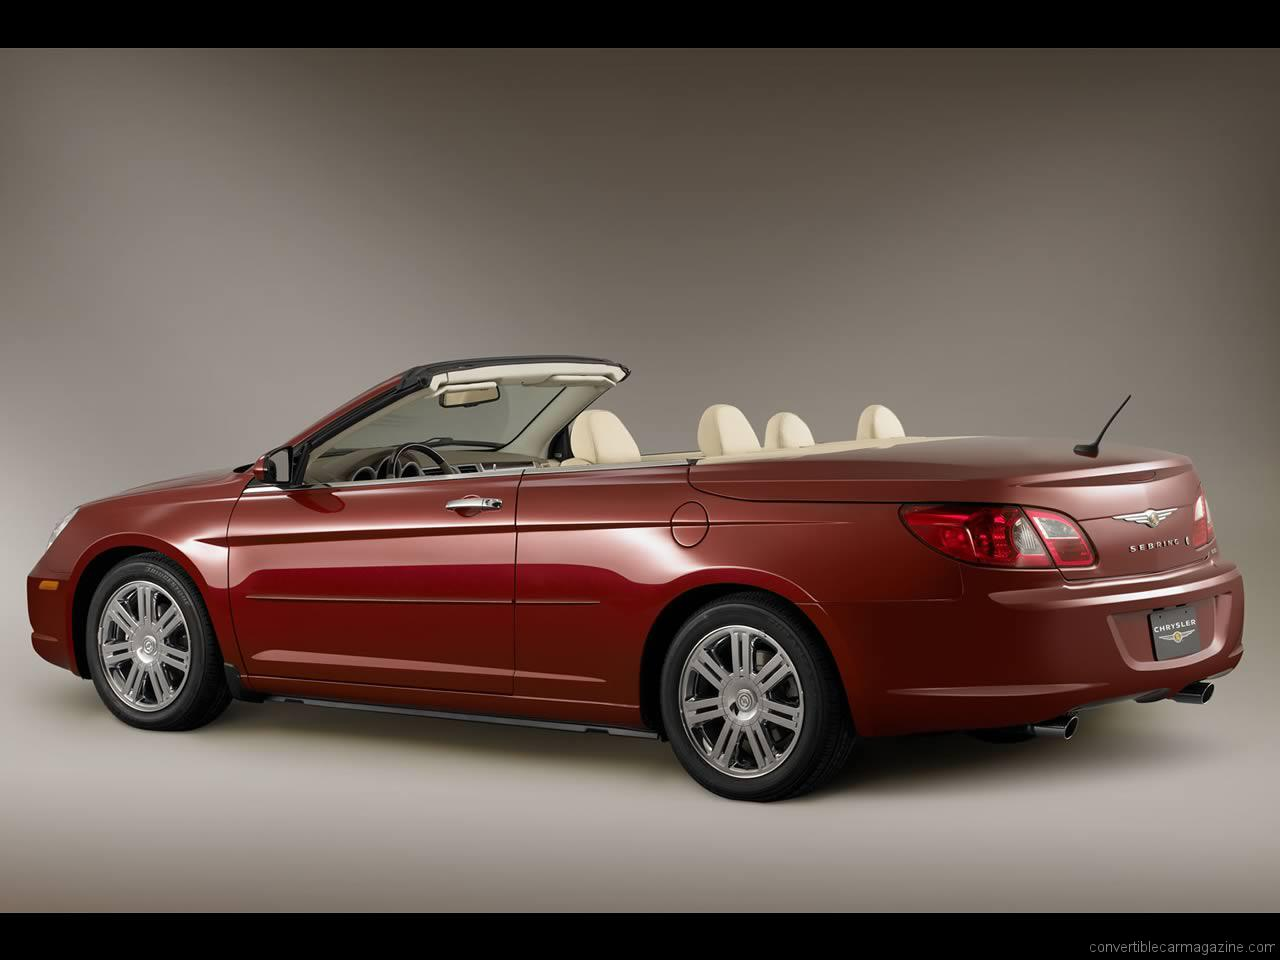 hight resolution of chrysler sebring convertible chrysler sebring convertible chrysler sebring convertible